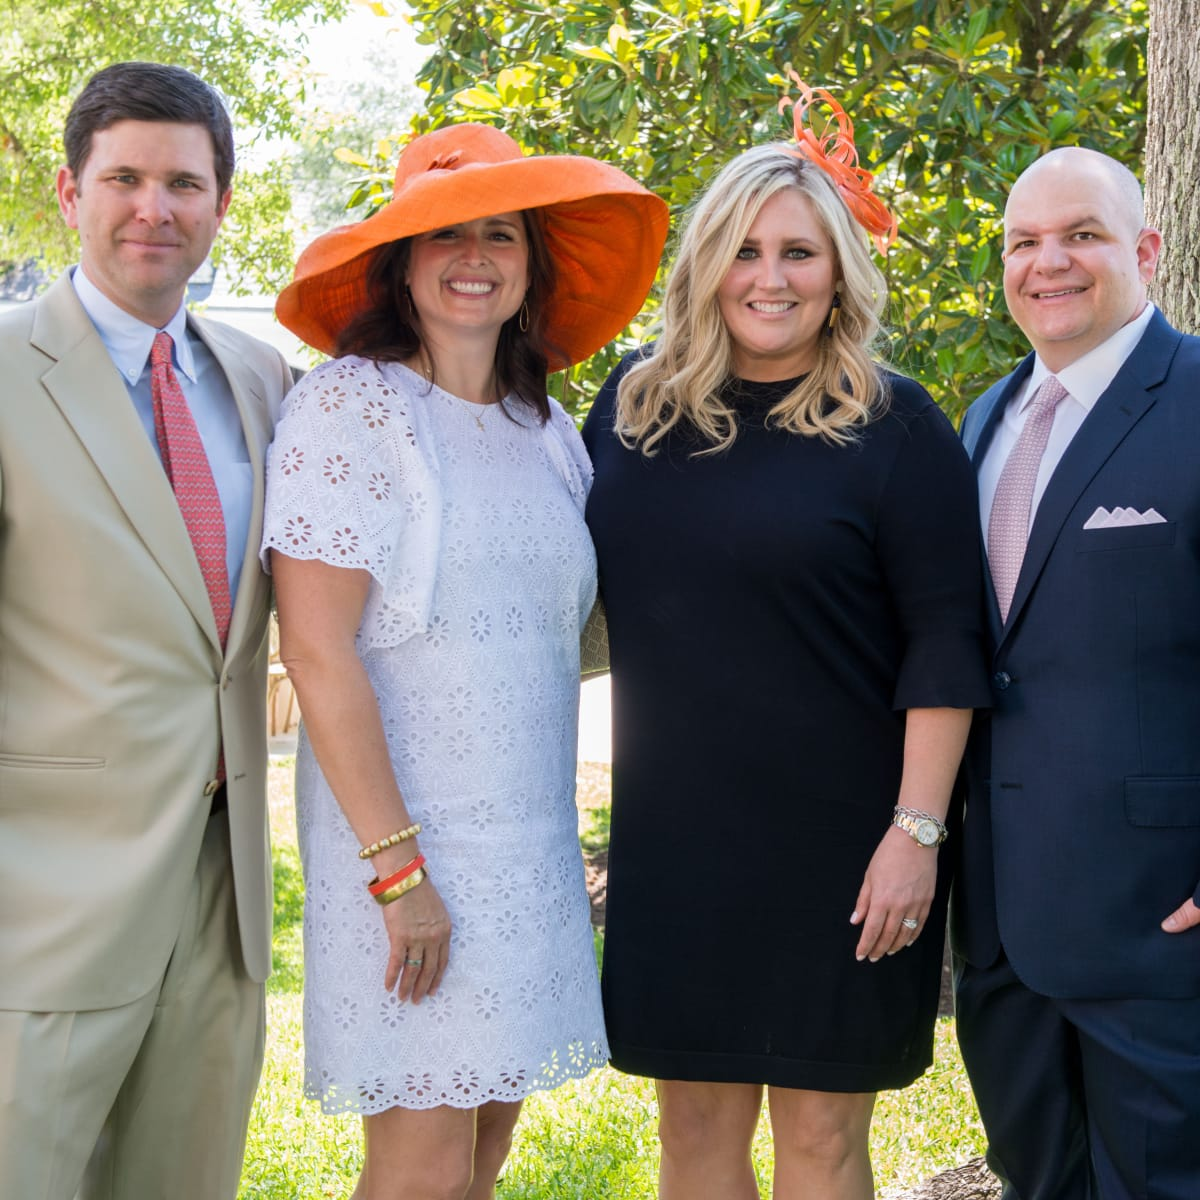 Houston, Hats, Hearts & Horseshoes benefiting Bo's Place 2017, May 2017, Charlie Neuhaus, Susan Neuhaus, Meredith Chastang, Patrick Chastang